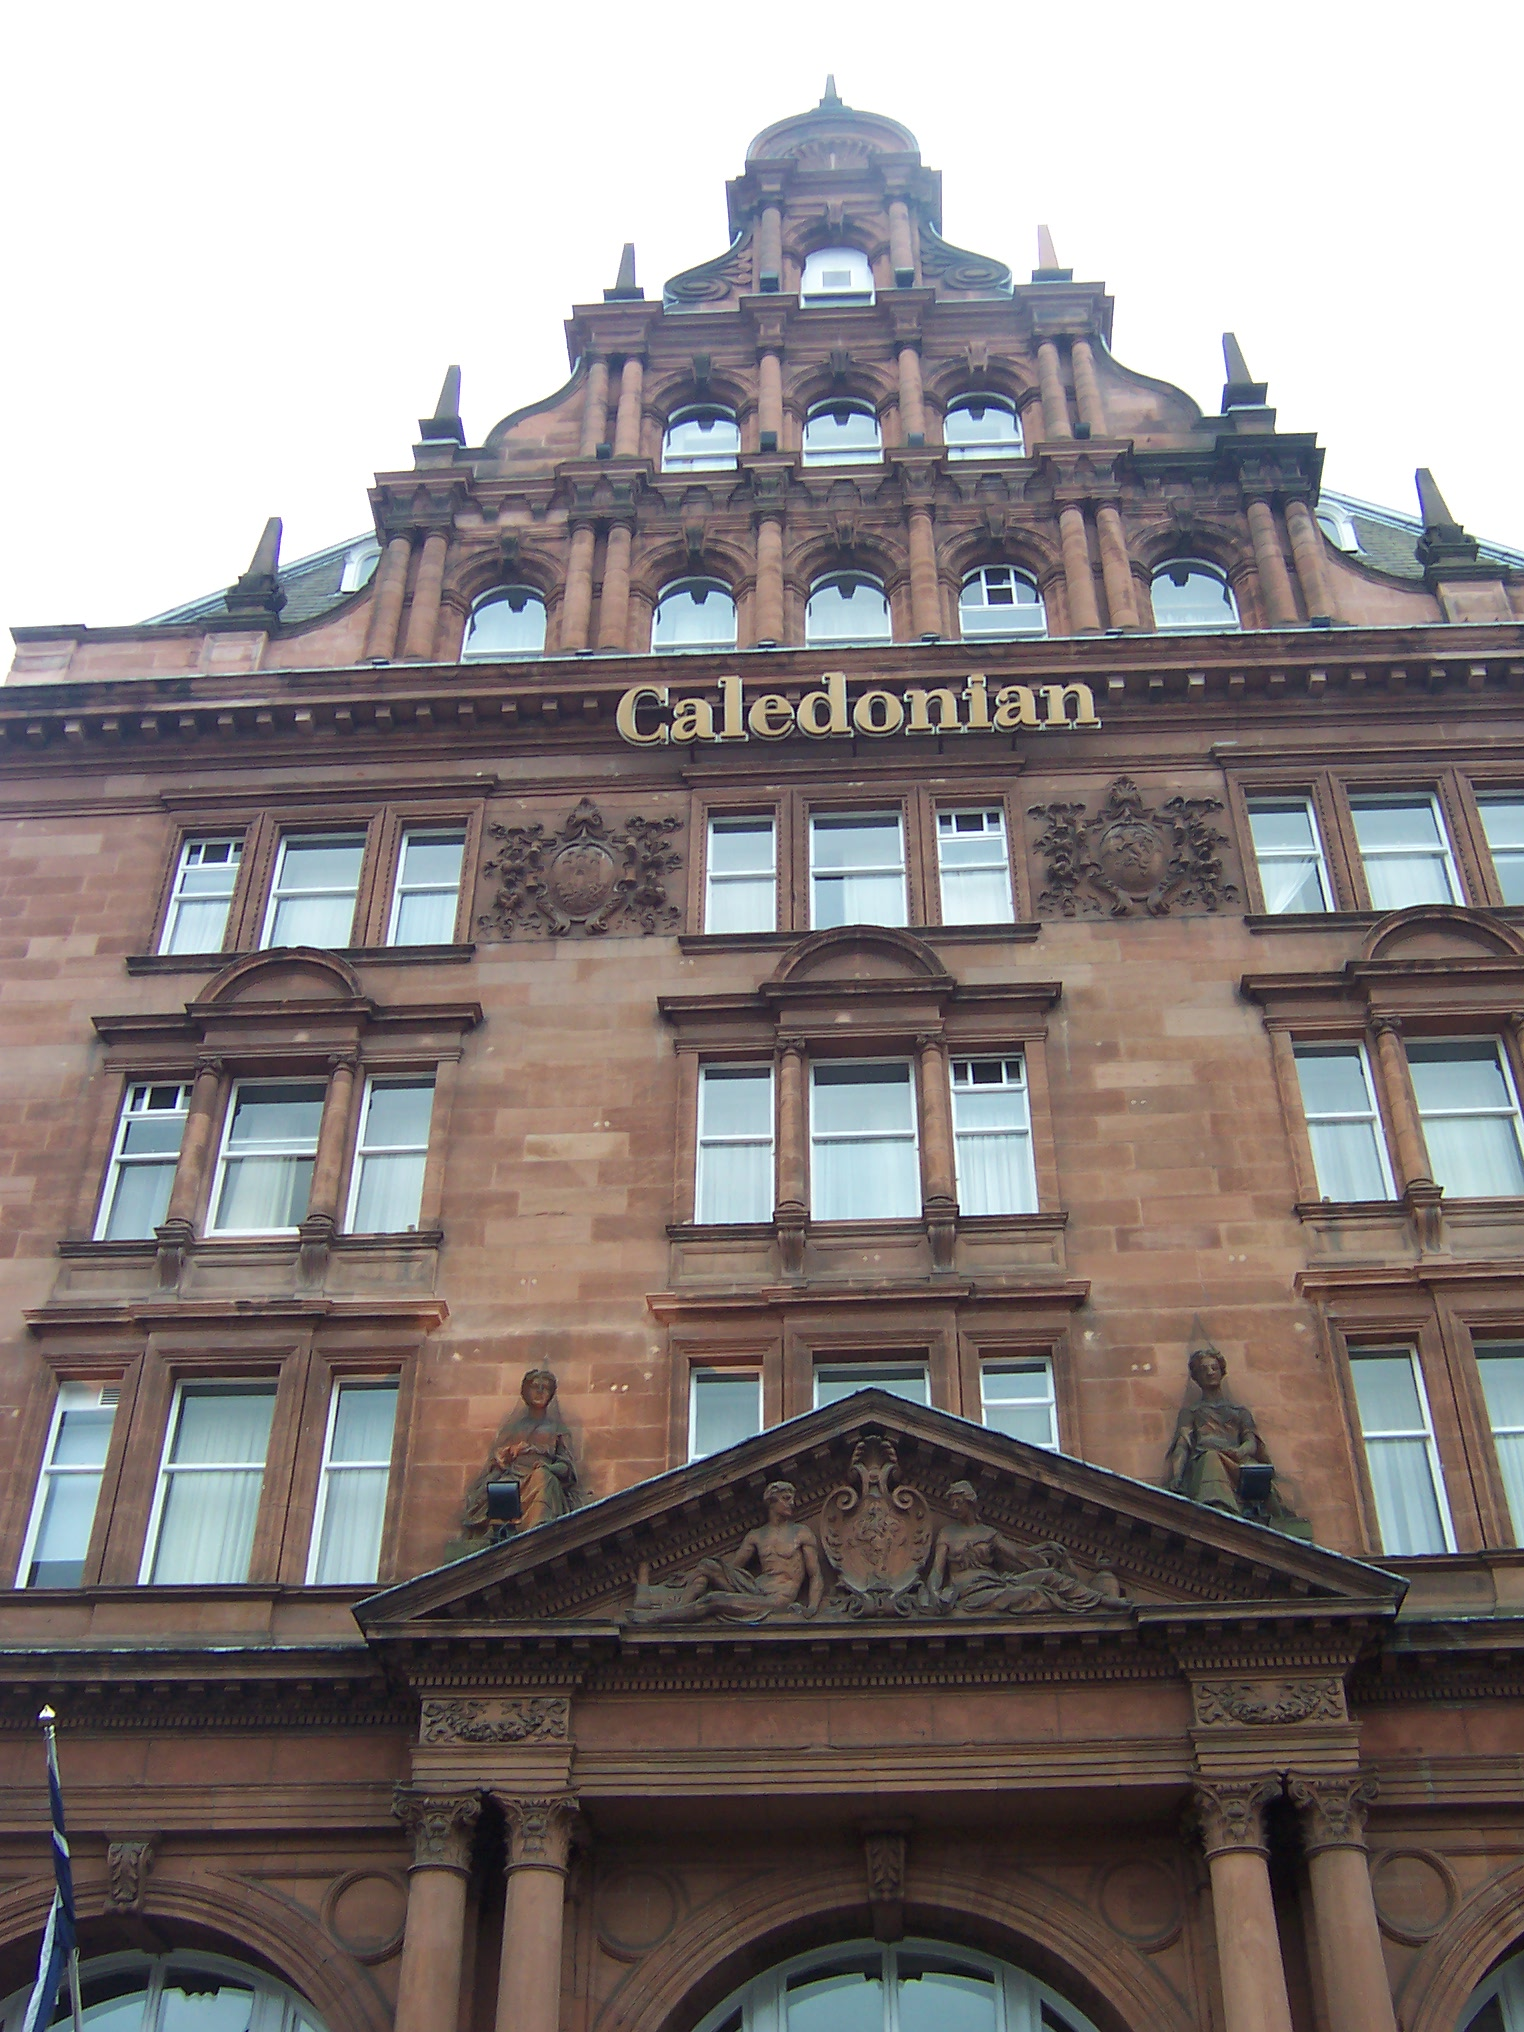 The Caledonian hotel is hailed as a Scottish landmark.